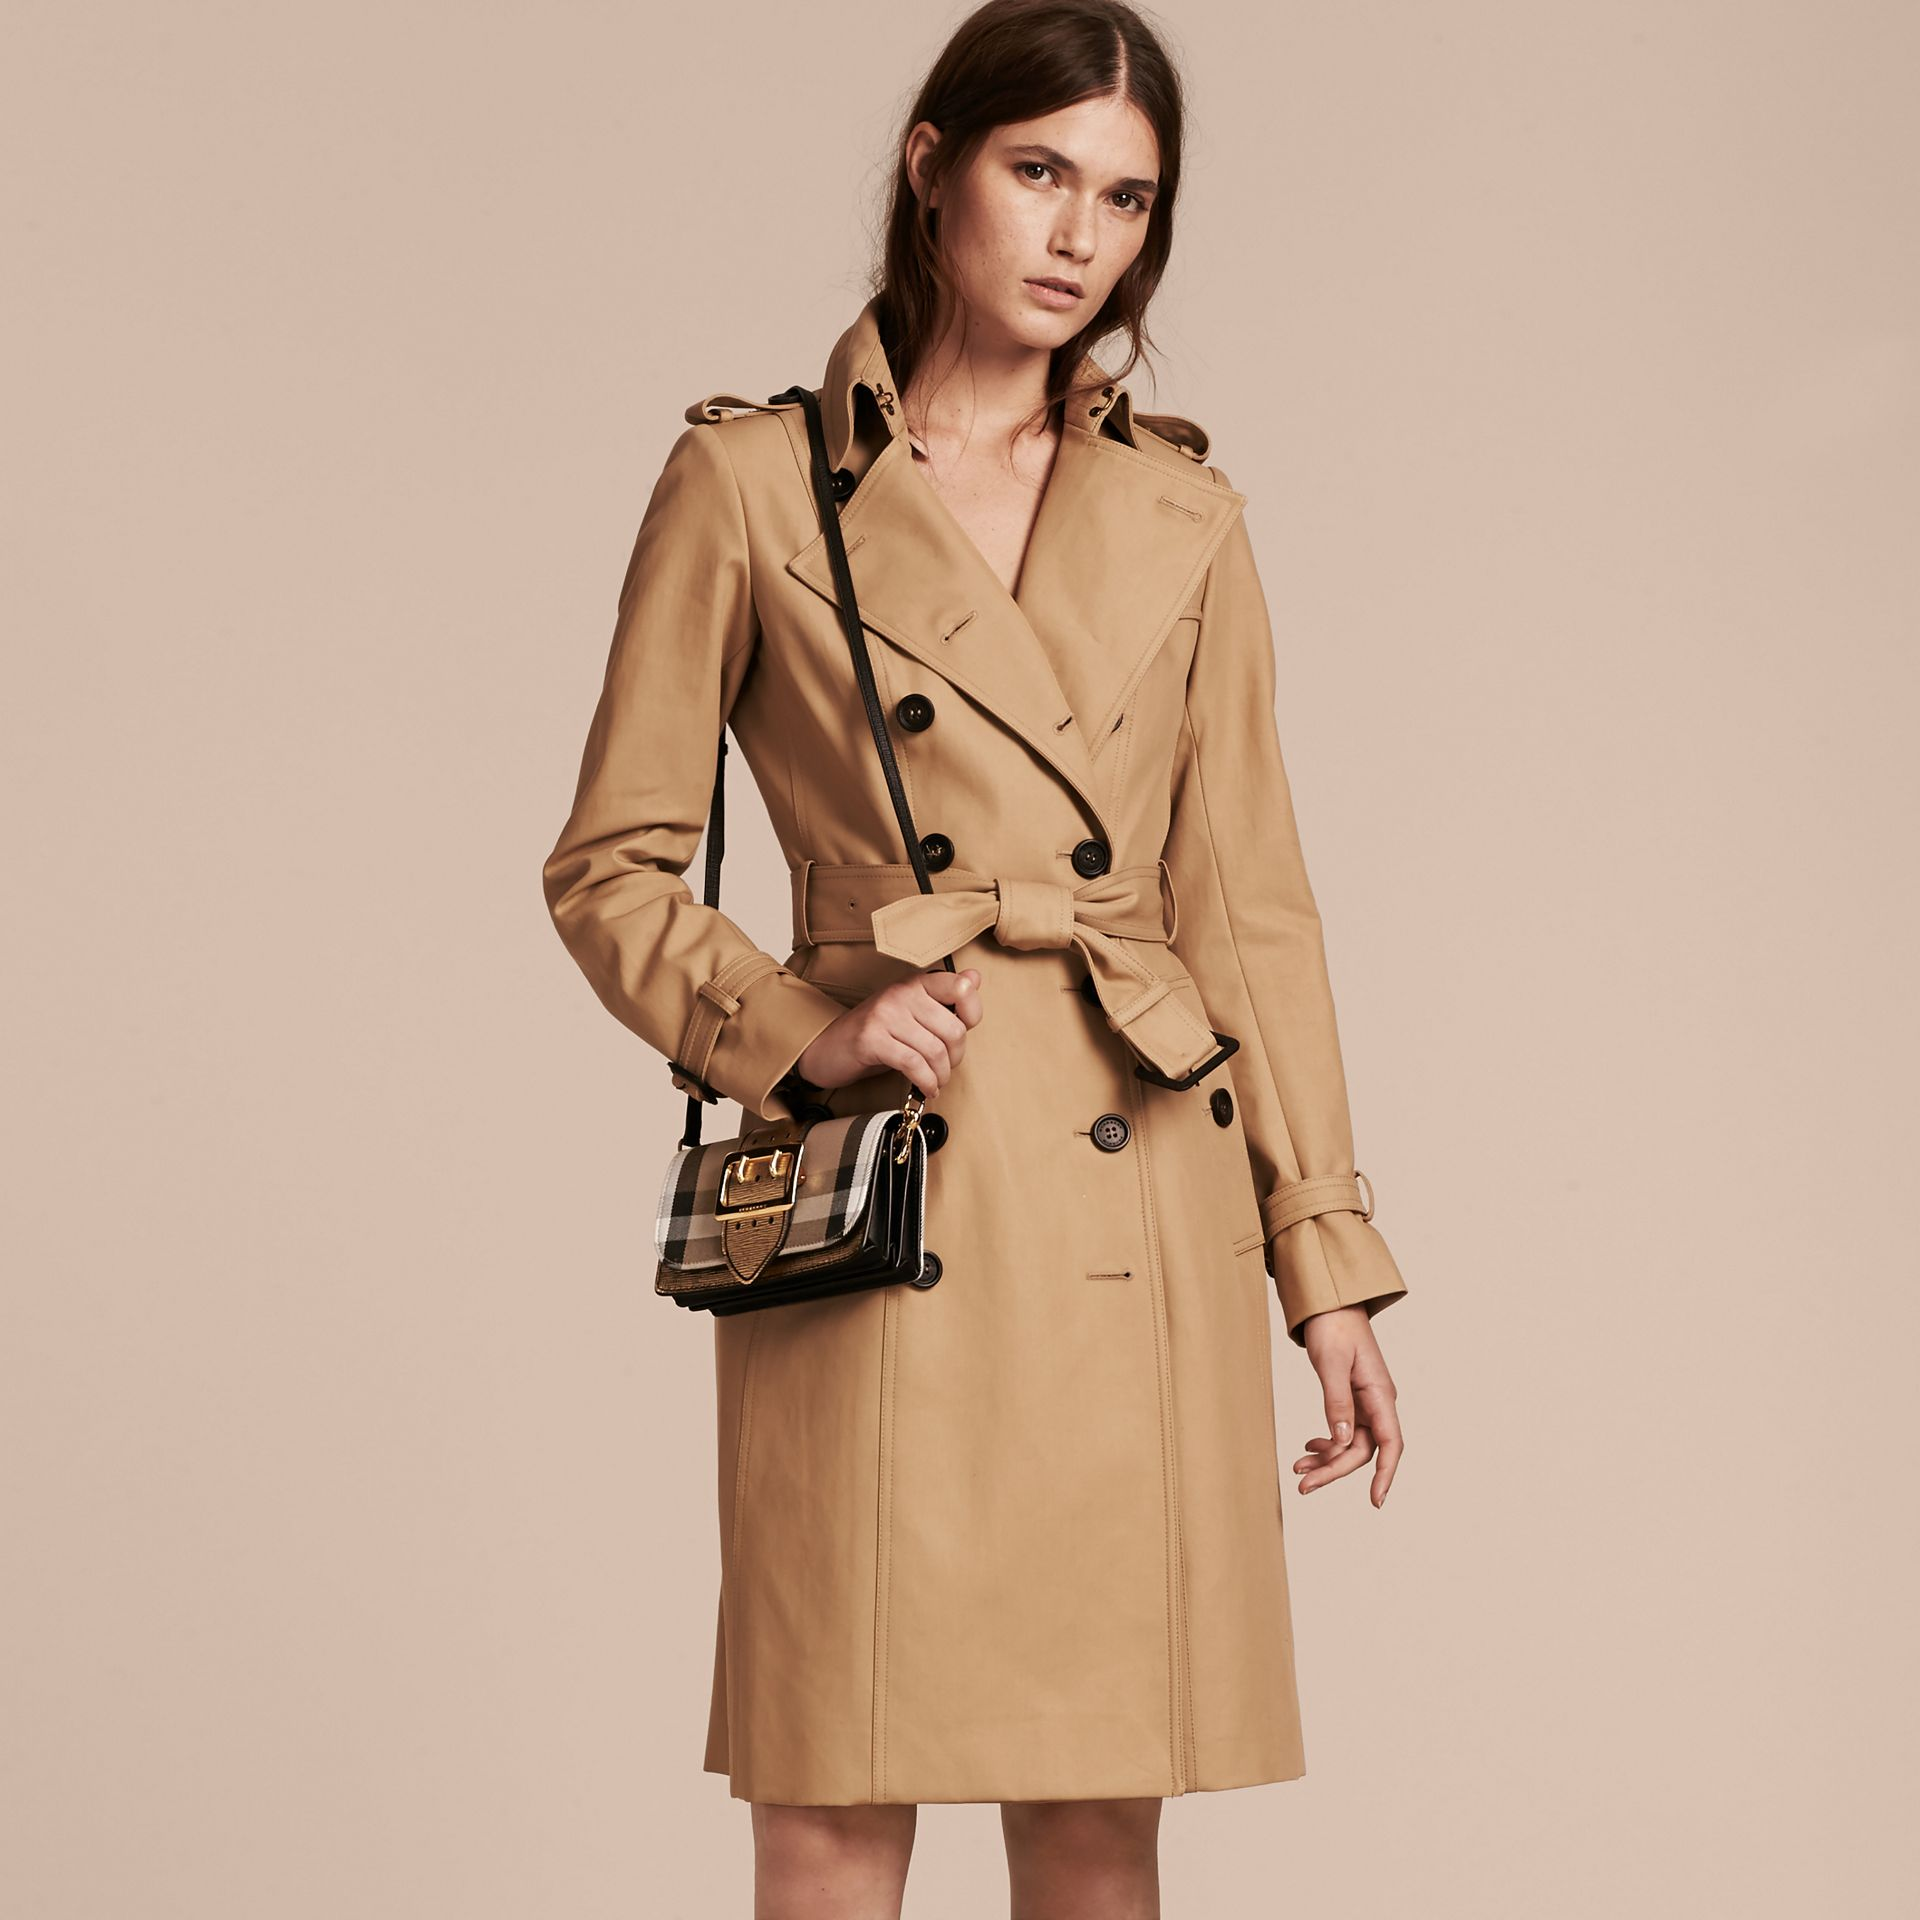 The Small Buckle Bag in House Check and Leather in Gold - Women | Burberry United Kingdom - gallery image 2